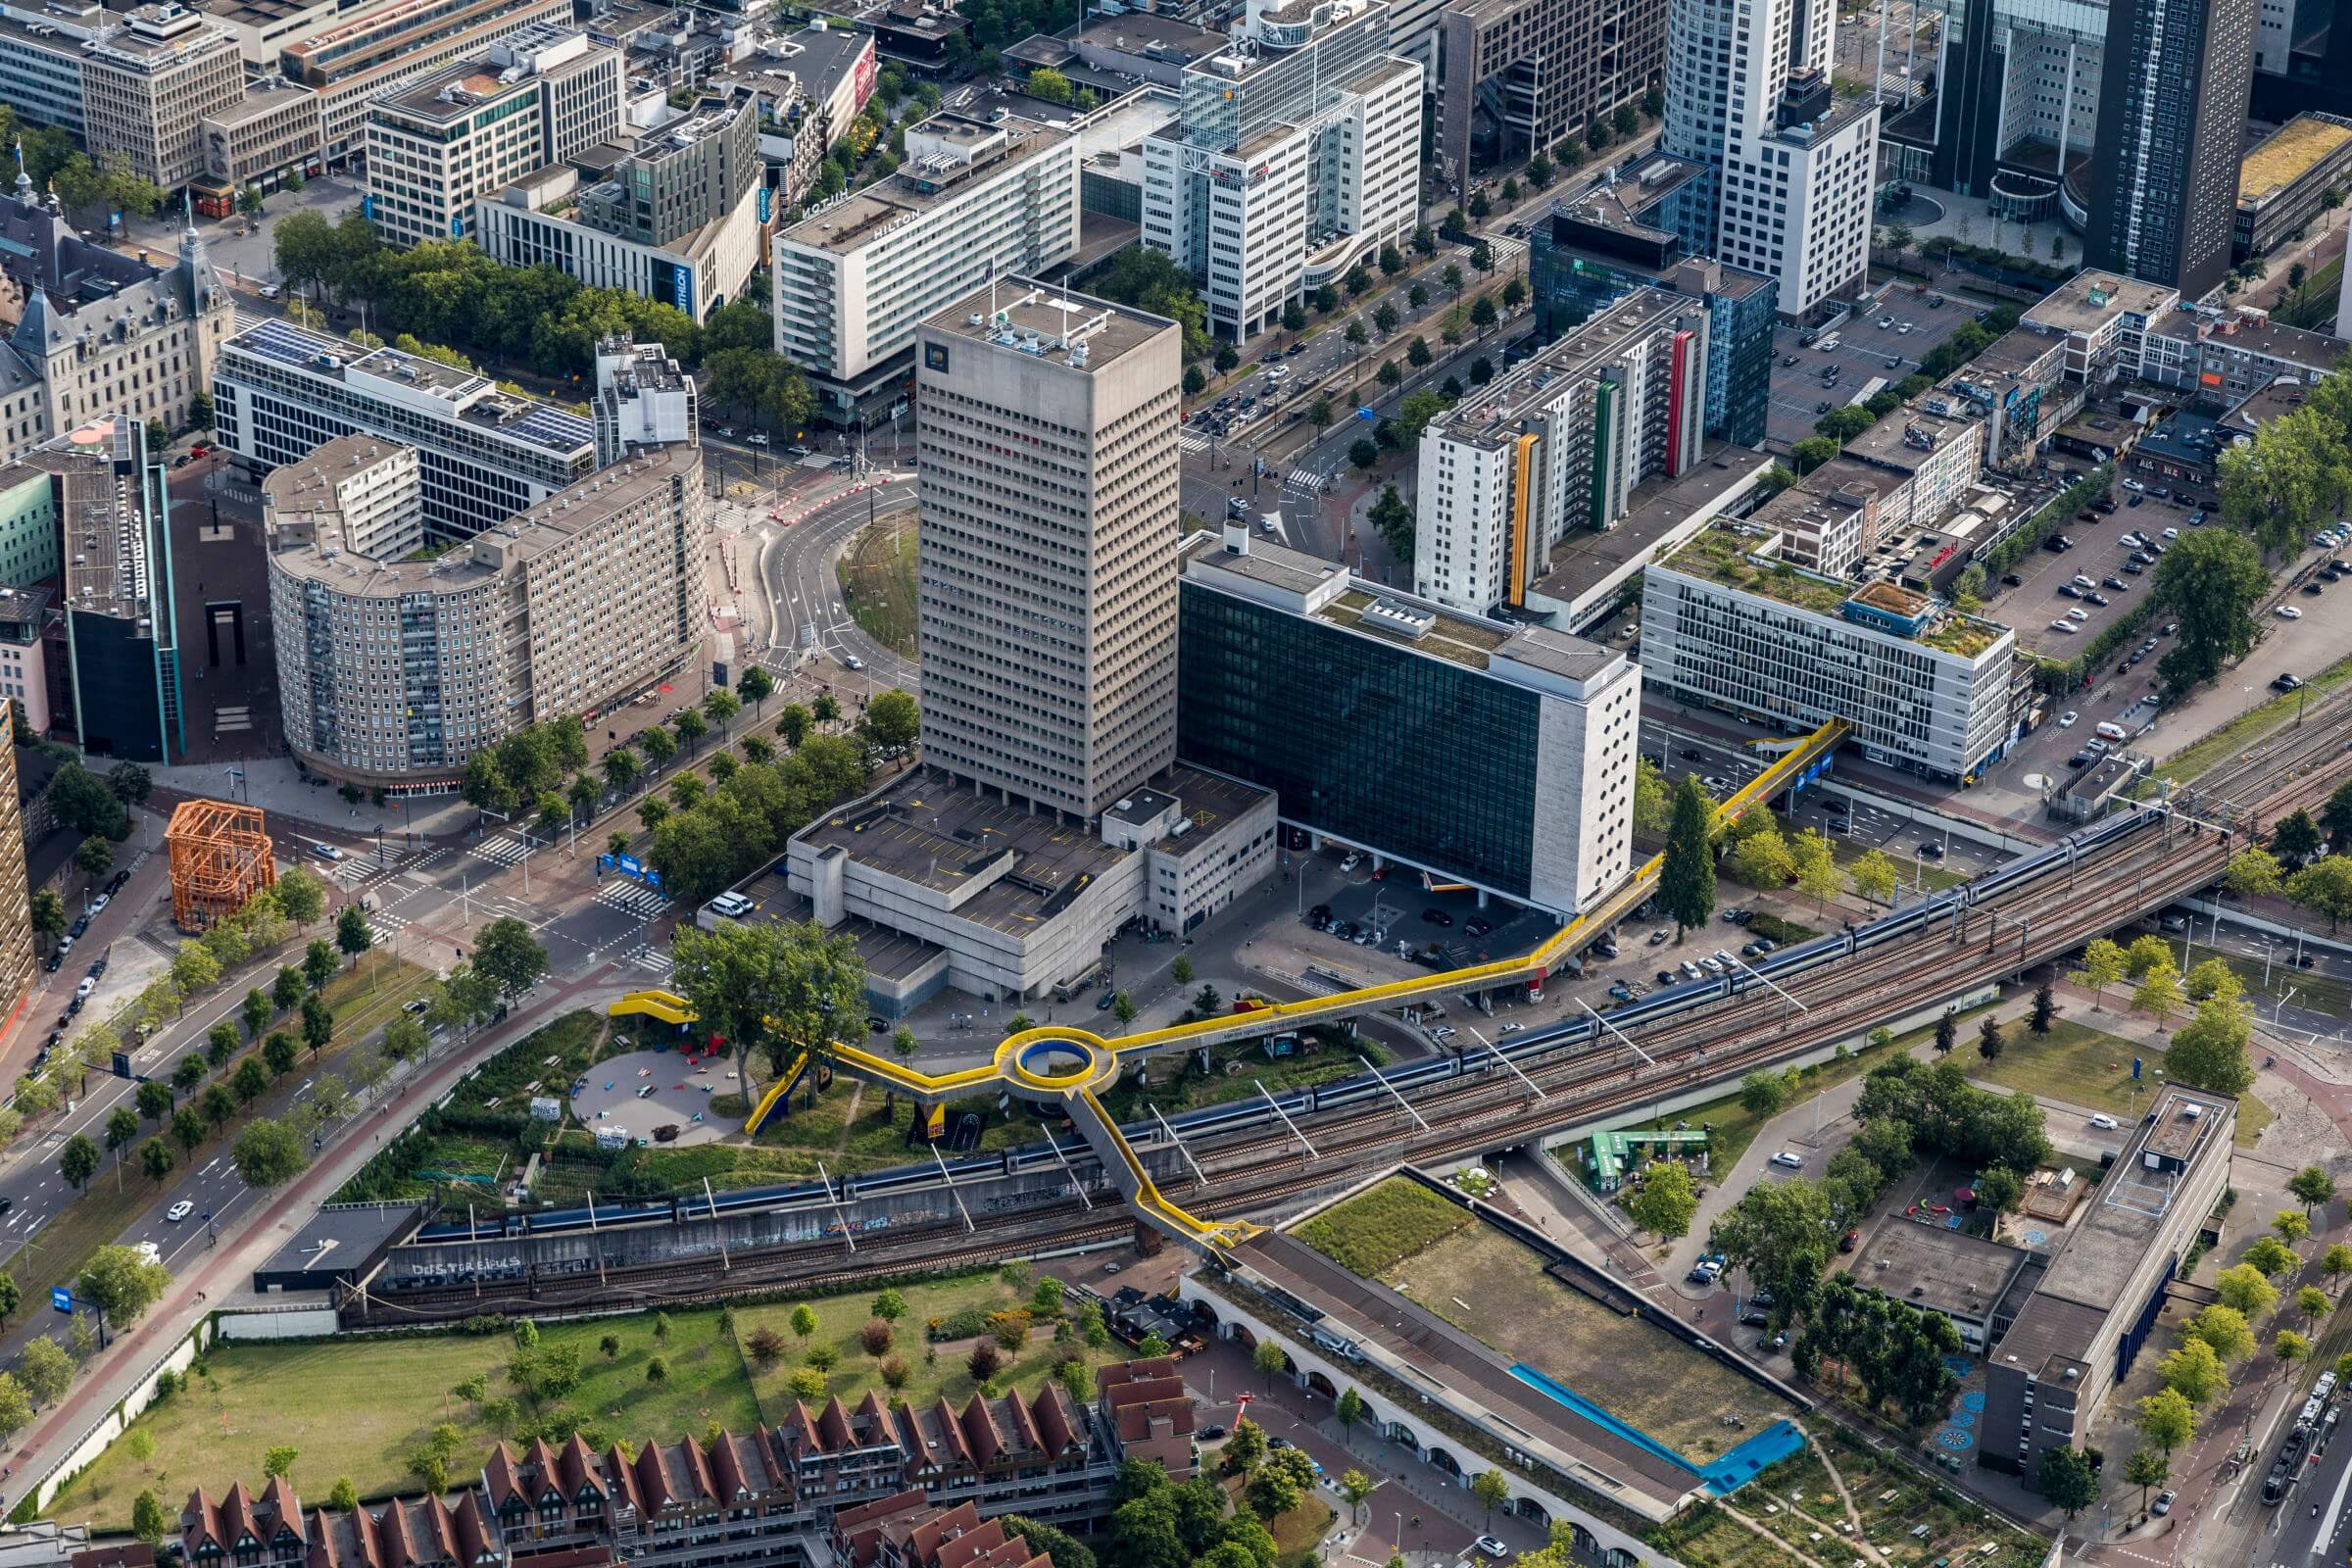 Aarial picture of Rotterdam city centre